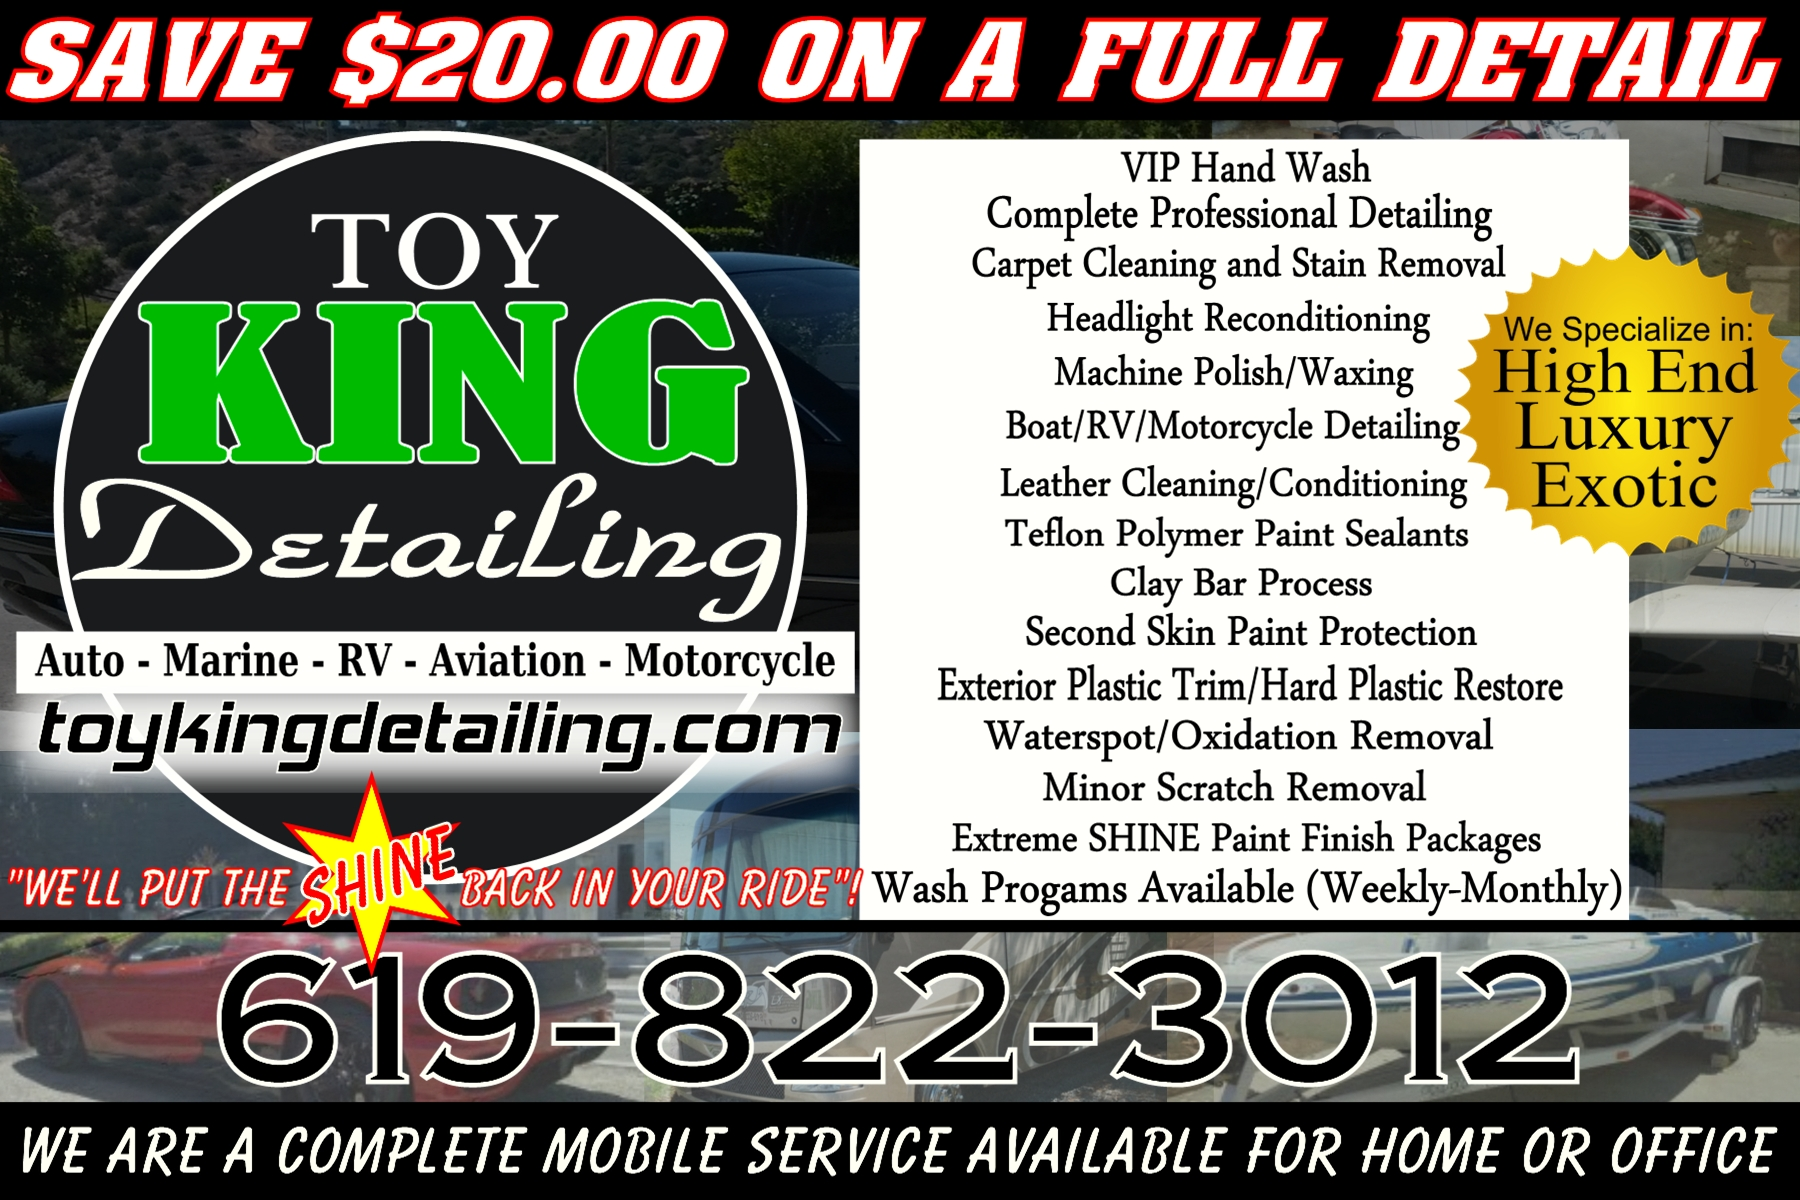 Carmel Valley San Diego Community | Toy King Detailing Promo Piece